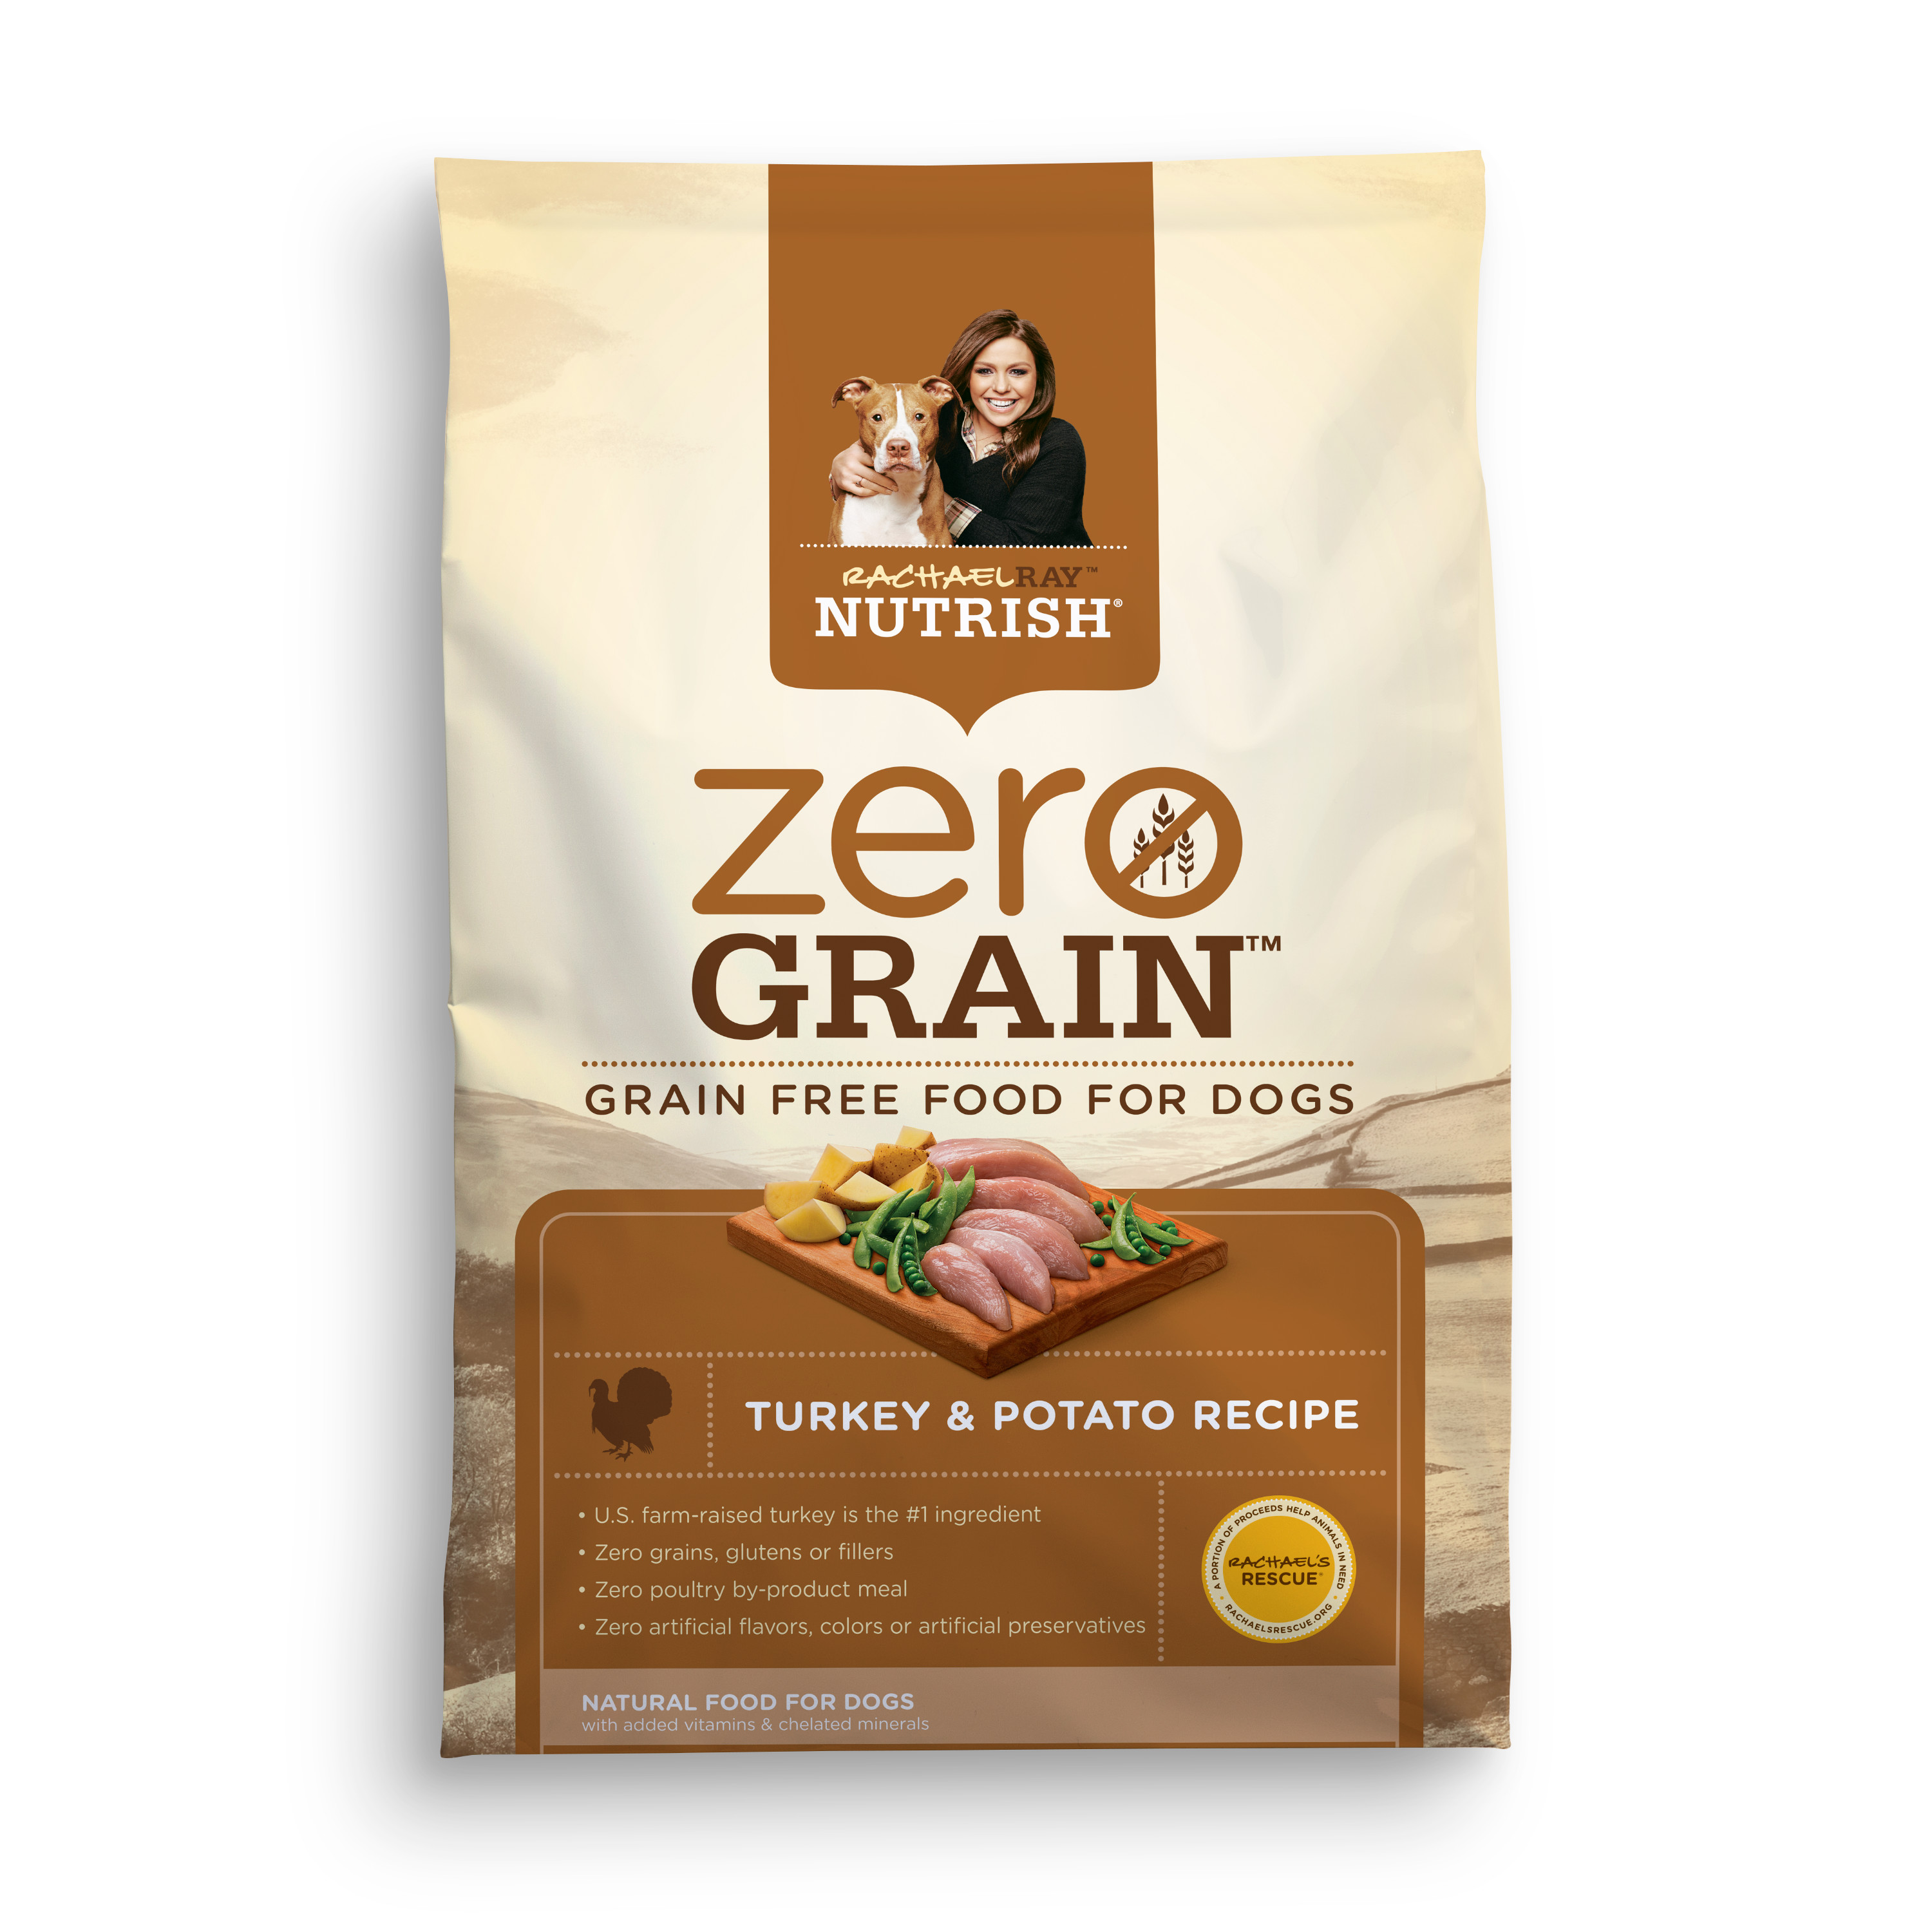 Rachael Ray Nutrish Zero Grain Natural Dry Dog Food, Turkey & Potato Recipe, 14 lbs